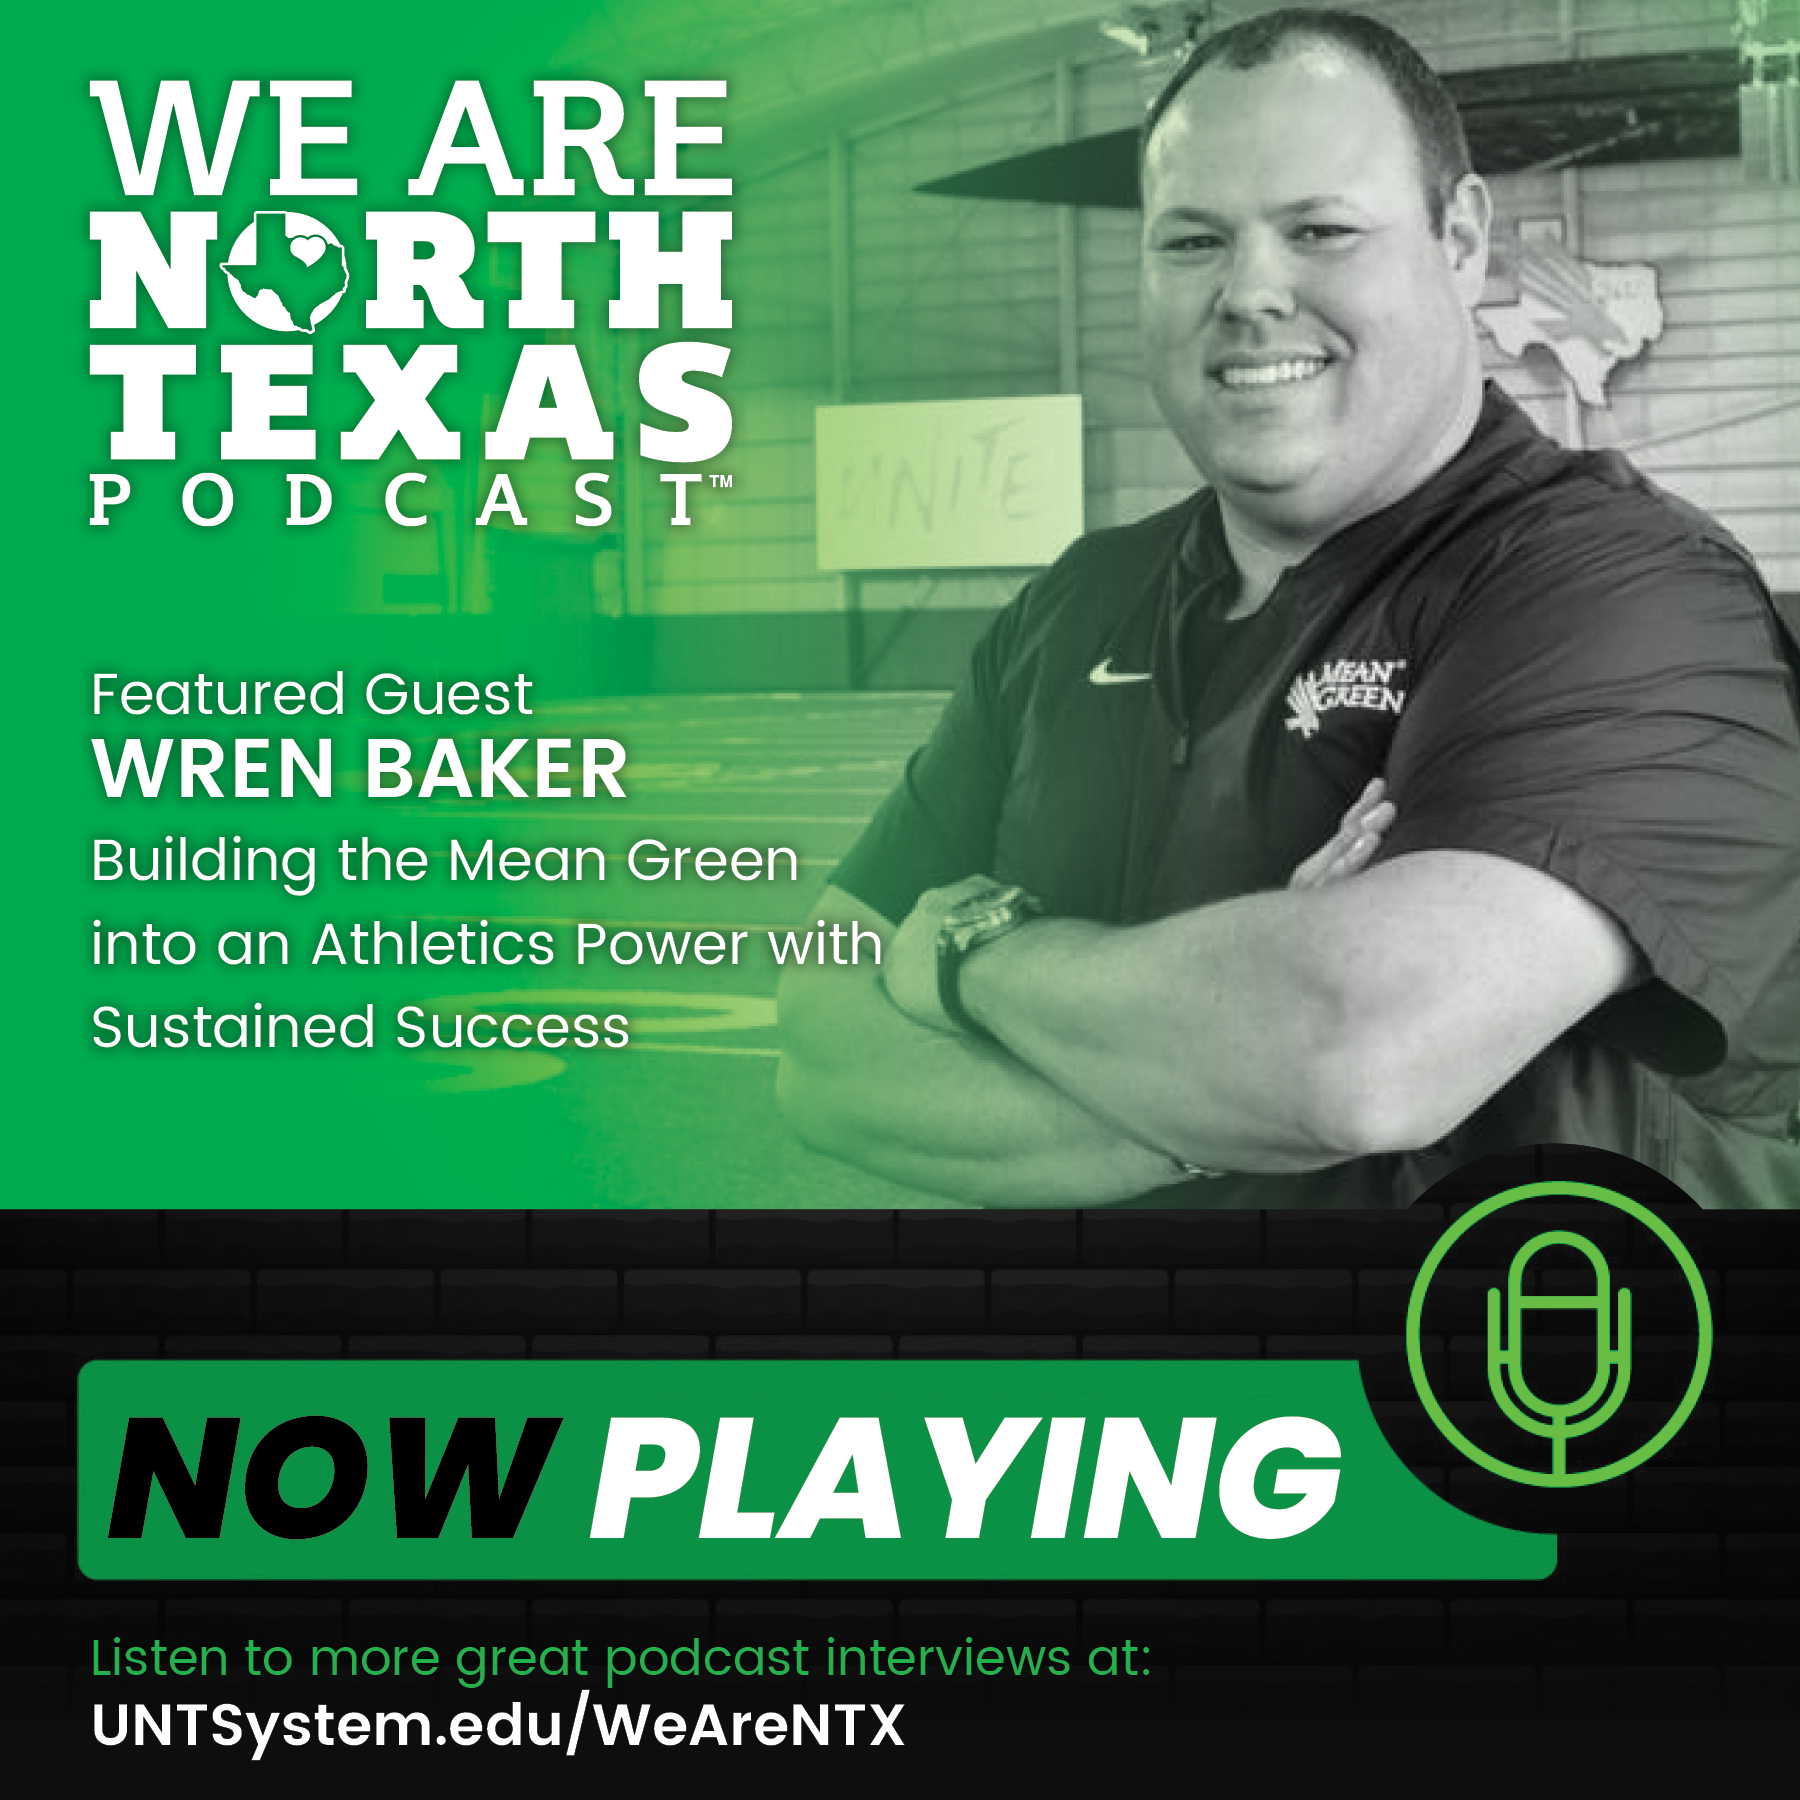 WREN BAKER WE ARE North Texas PODCAST